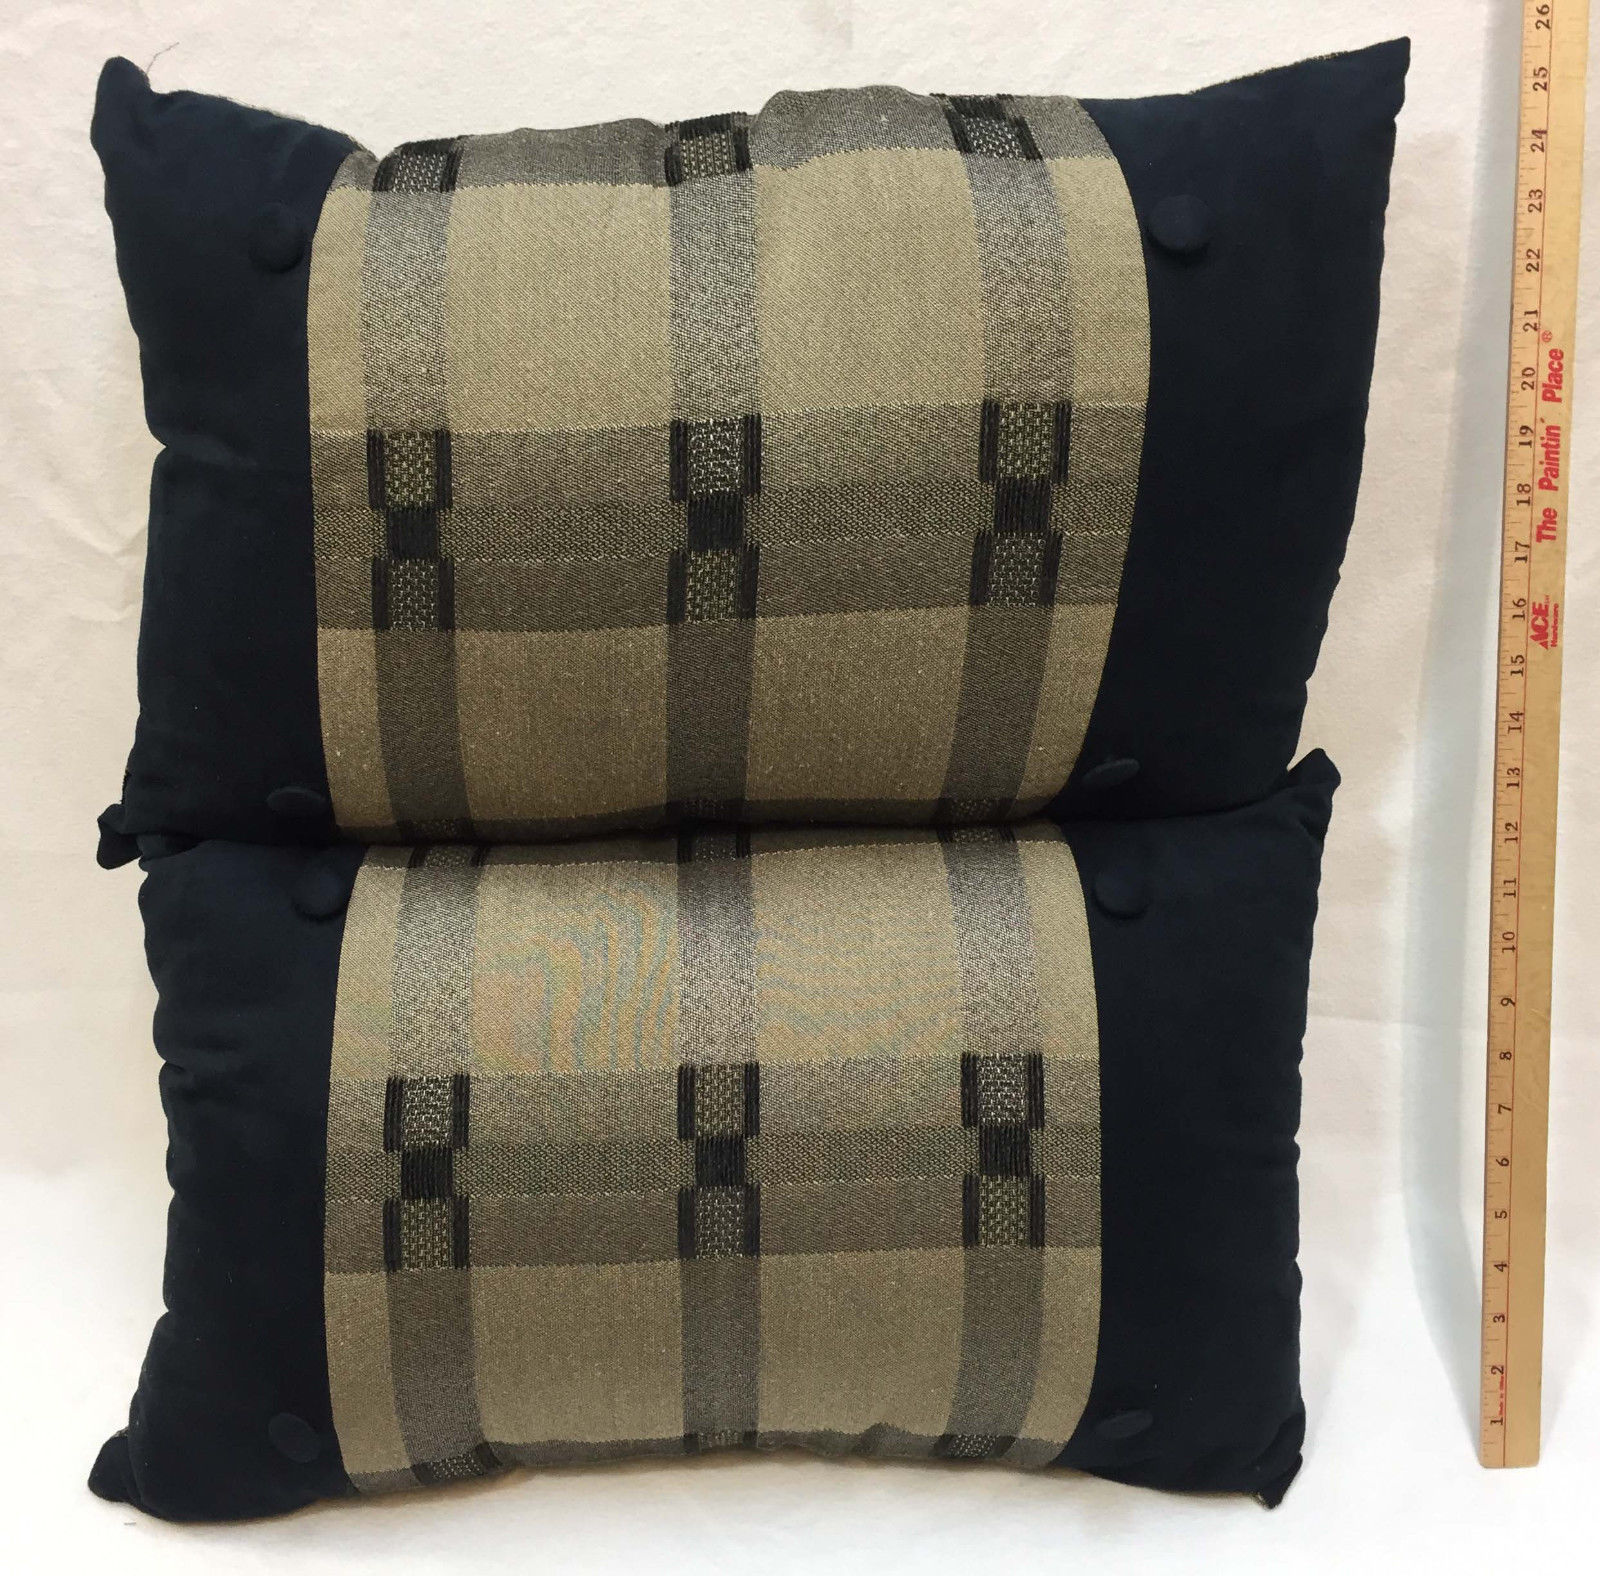 2 Throw Pillows Black Gold Brown Tweed Decorative w/ Buttons Plush Rectangle - $48.50